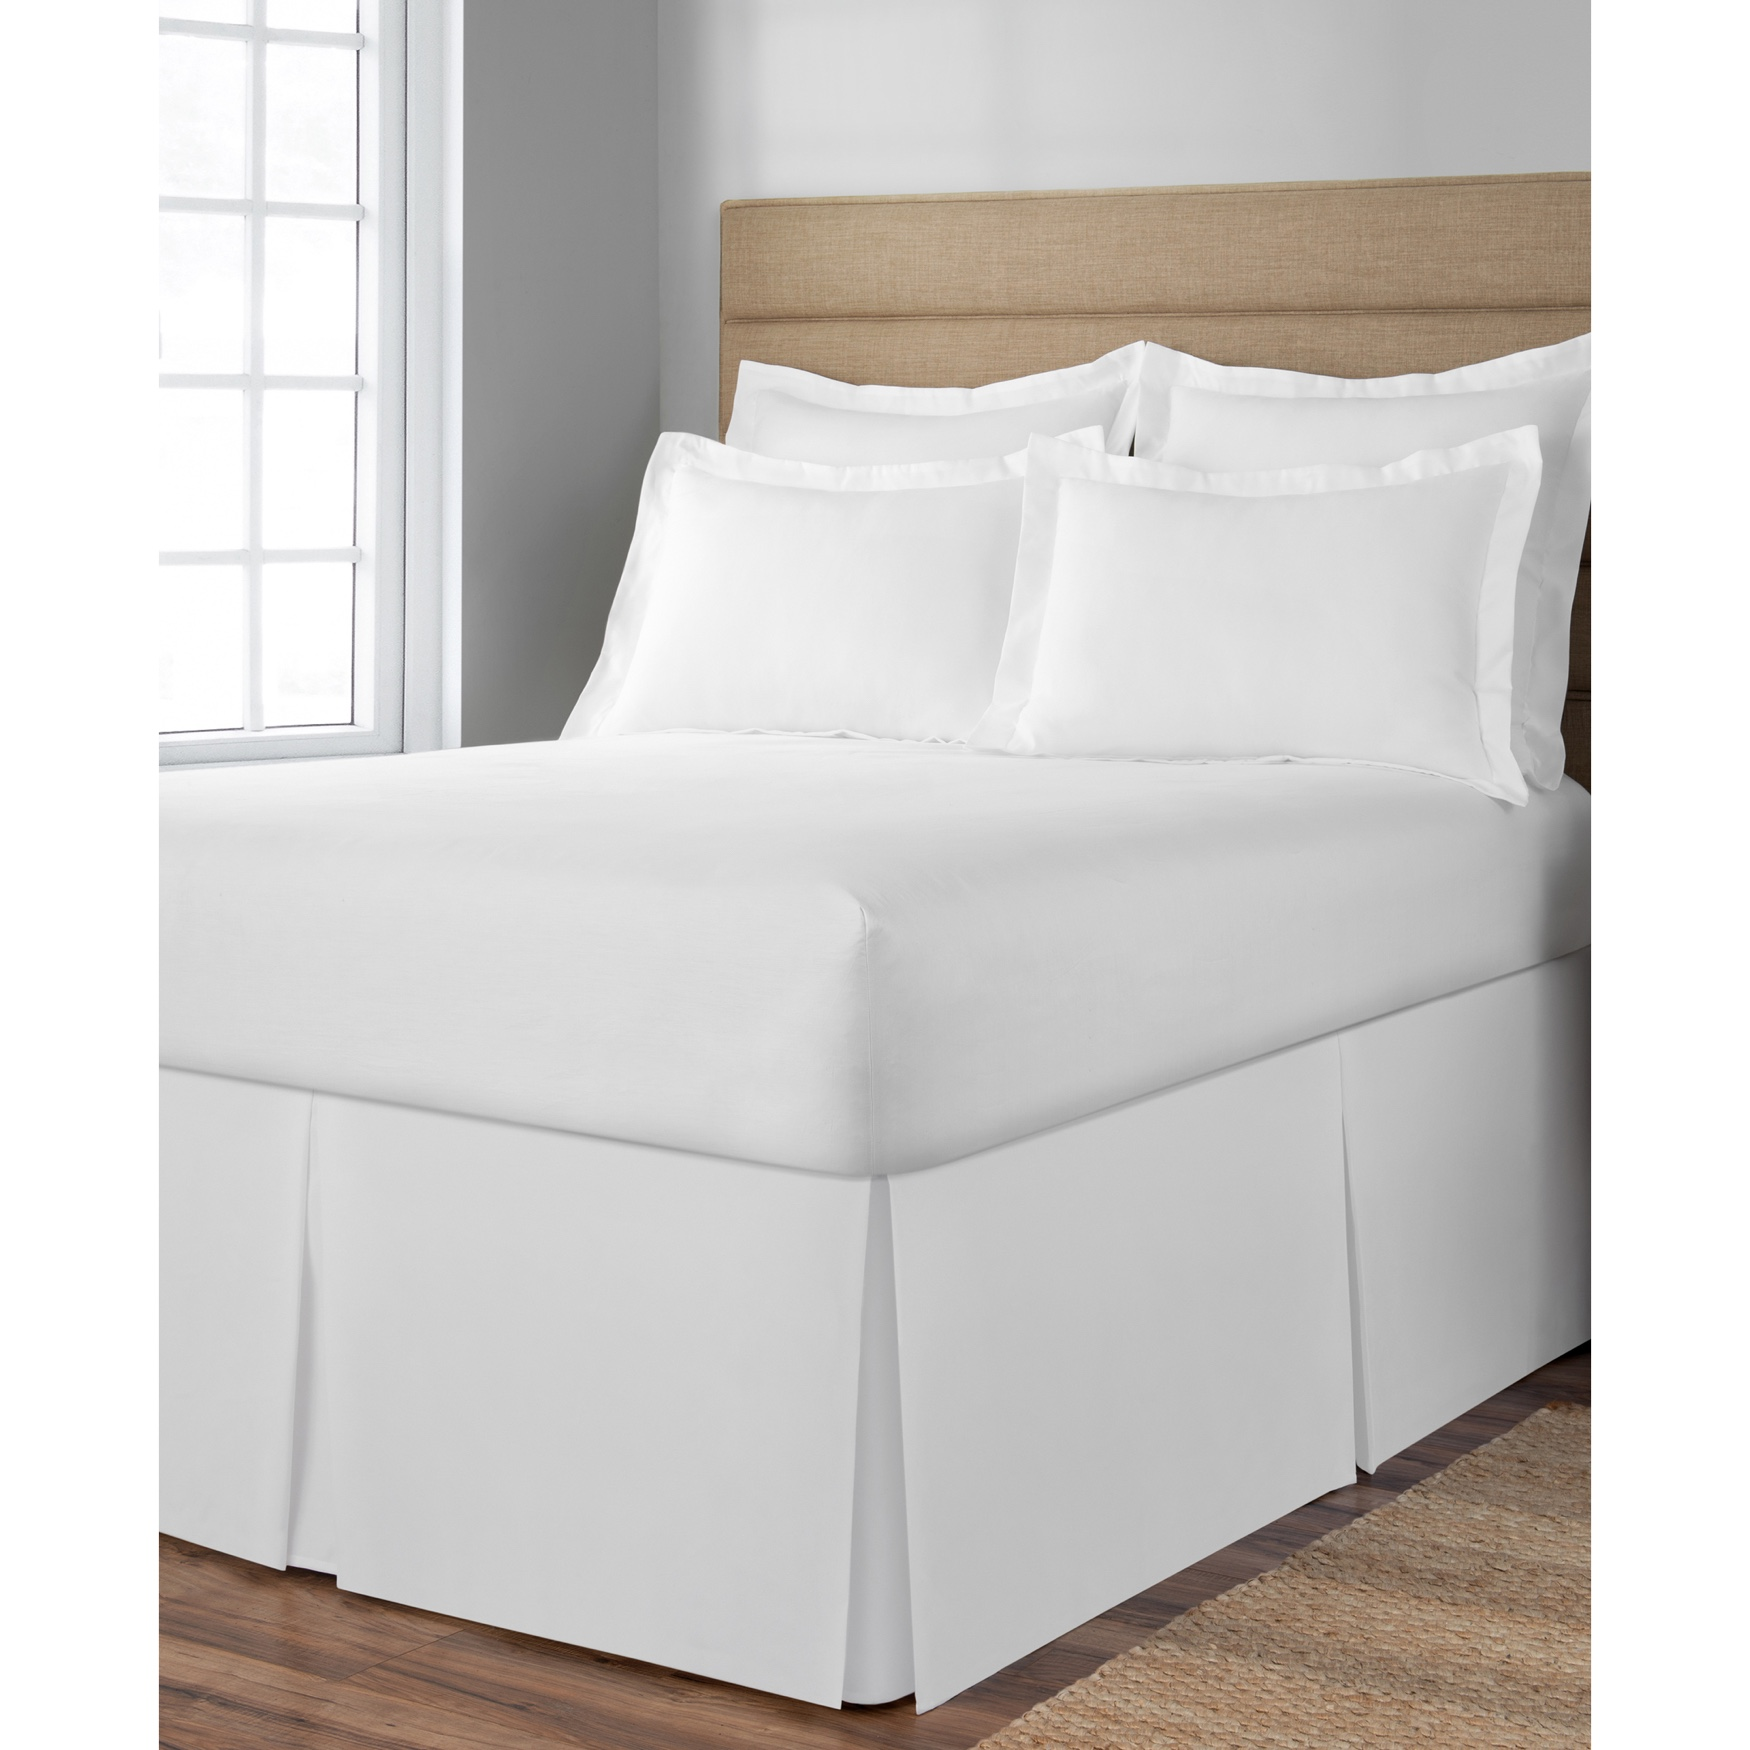 "Space Maker Extra-Long 21"" Drop Length White Bed Skirt,"